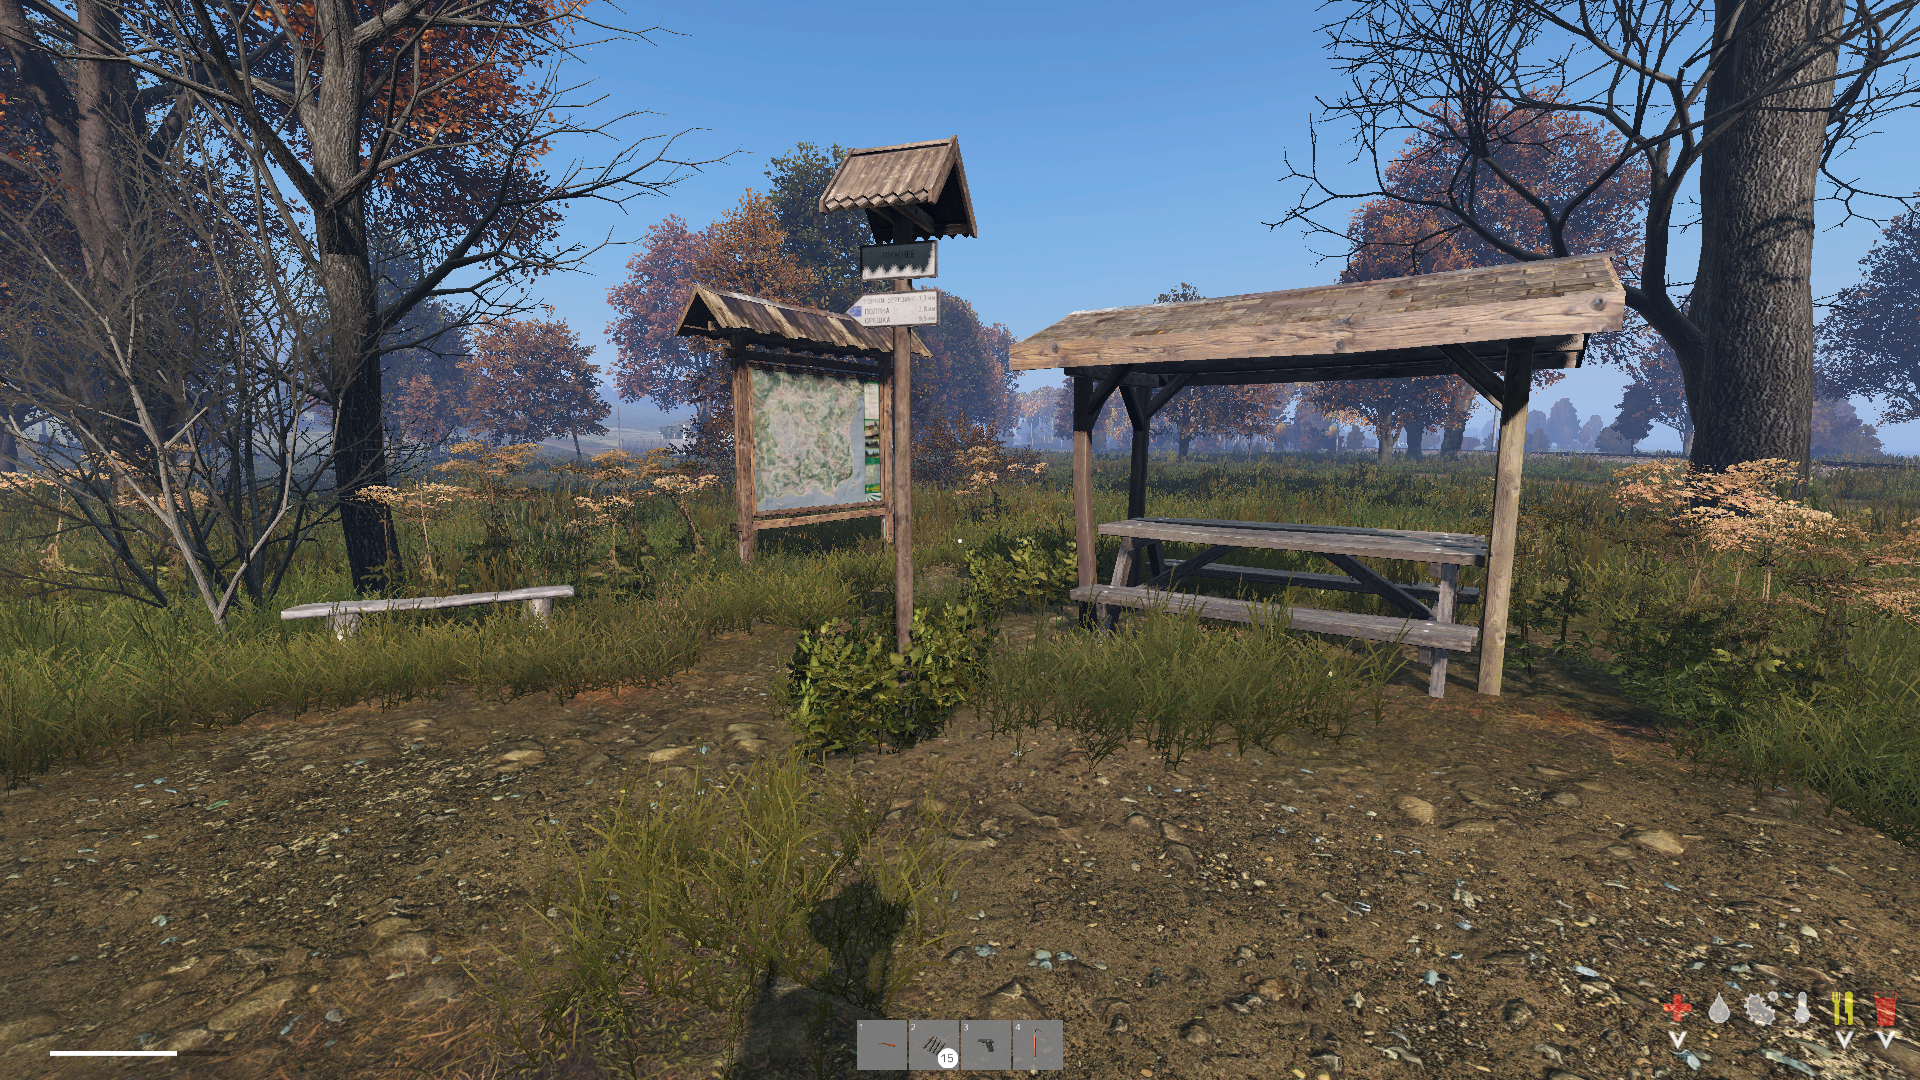 Dayz Karte Ps4.New Maps Points In Dayz 0 63 Dayz 0 63 House Styles